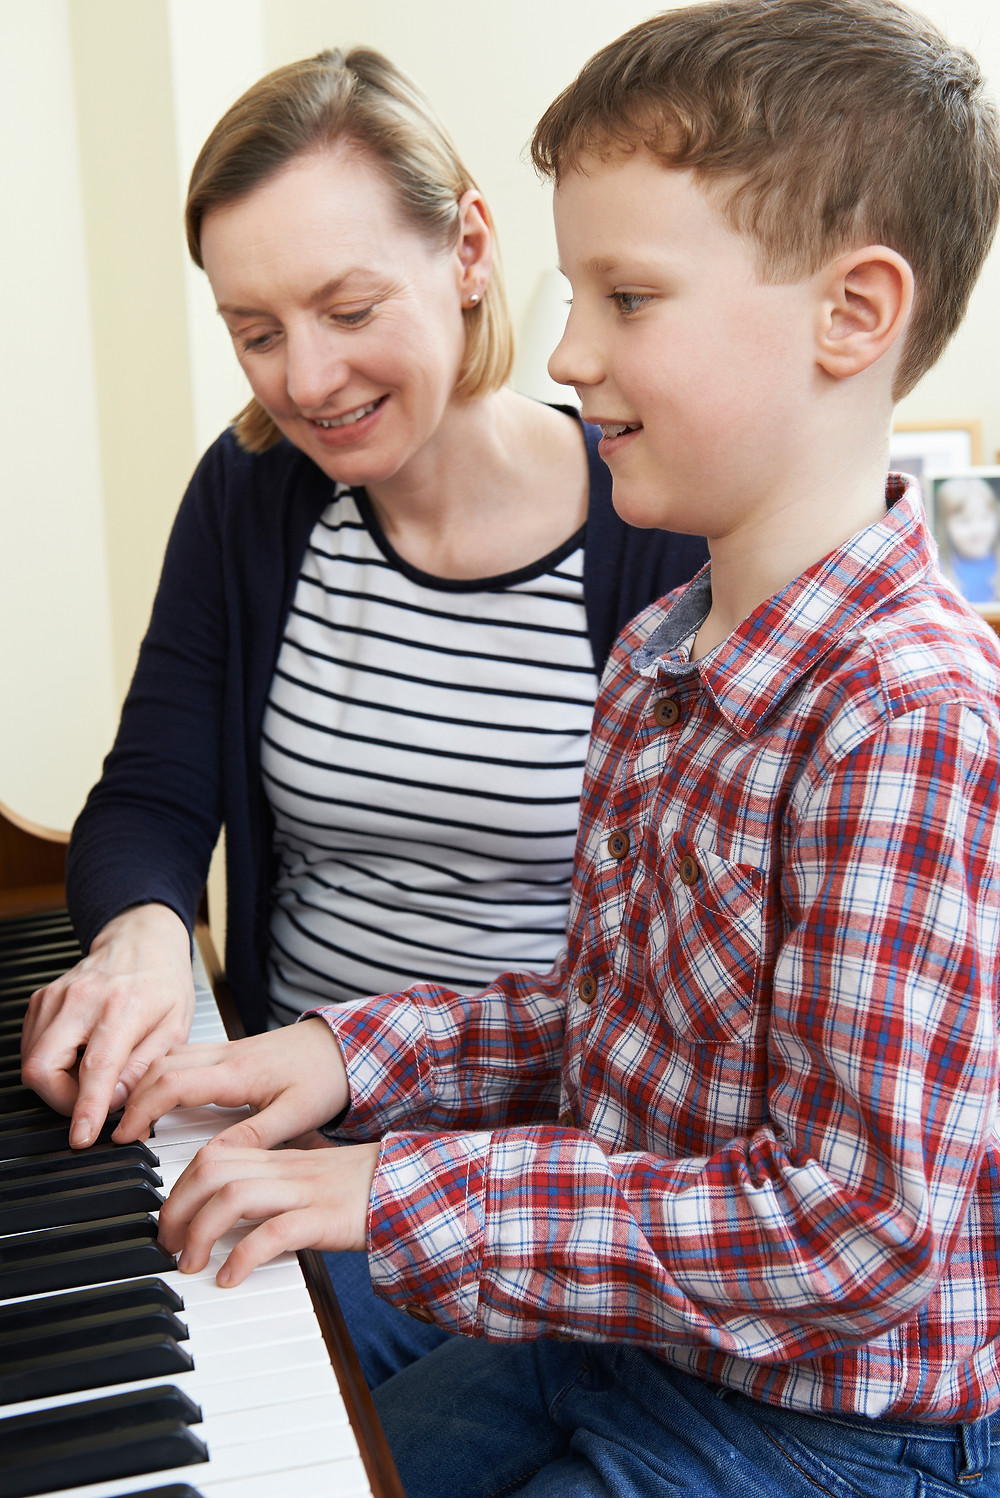 A teacher helps a student learn to play the piano in his lesson